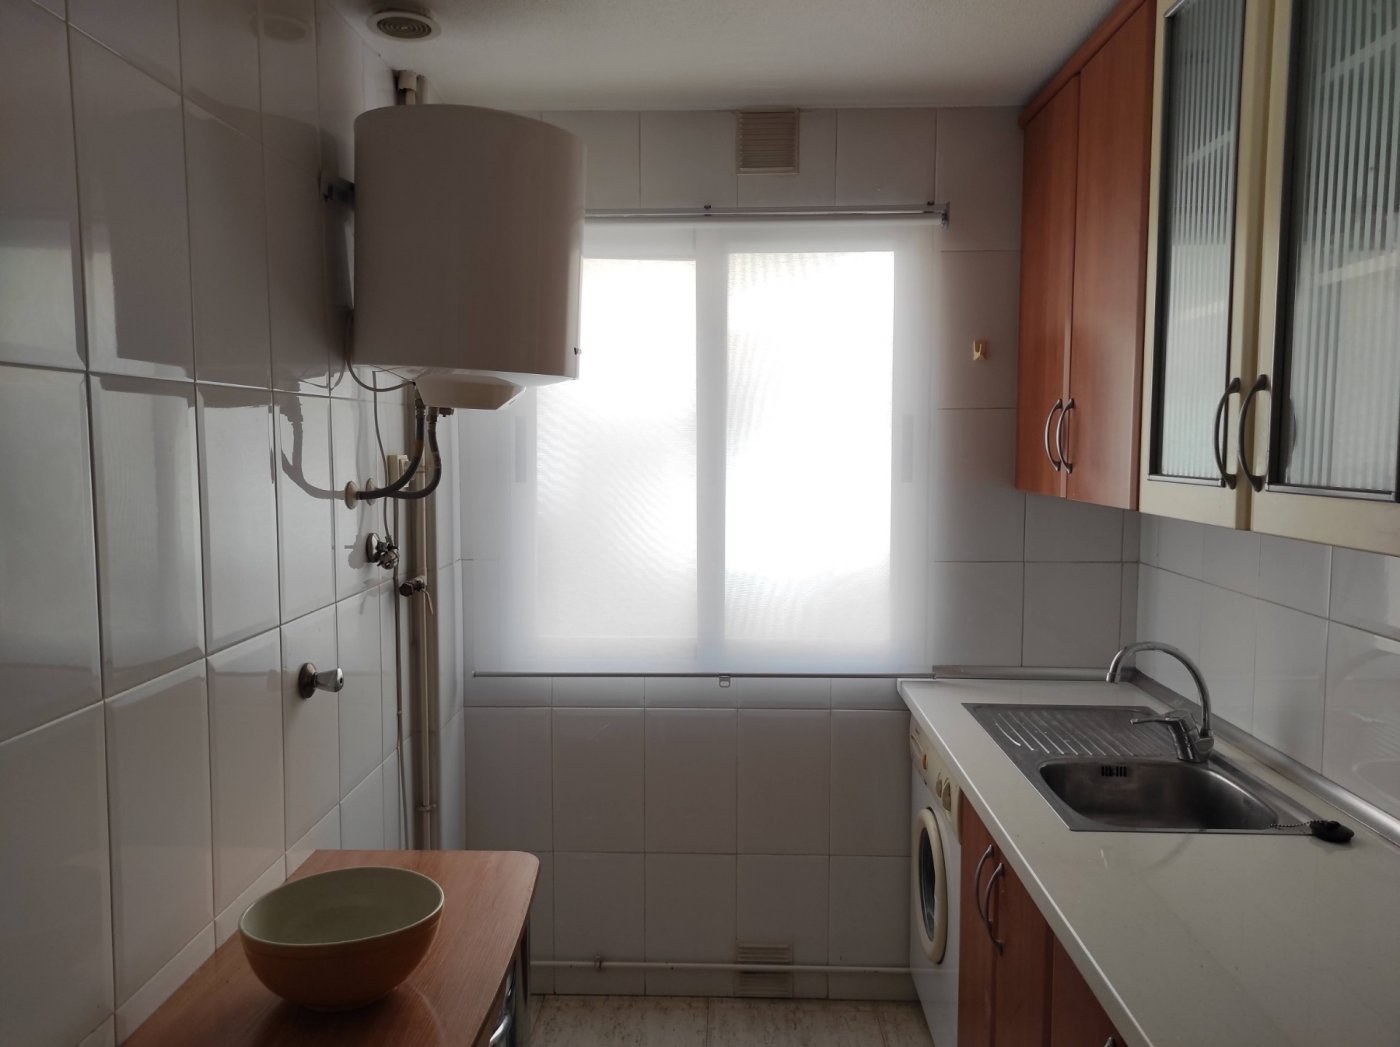 Gallery Image 4 of Flat For rent in Barrio Del Carmen, Murcia